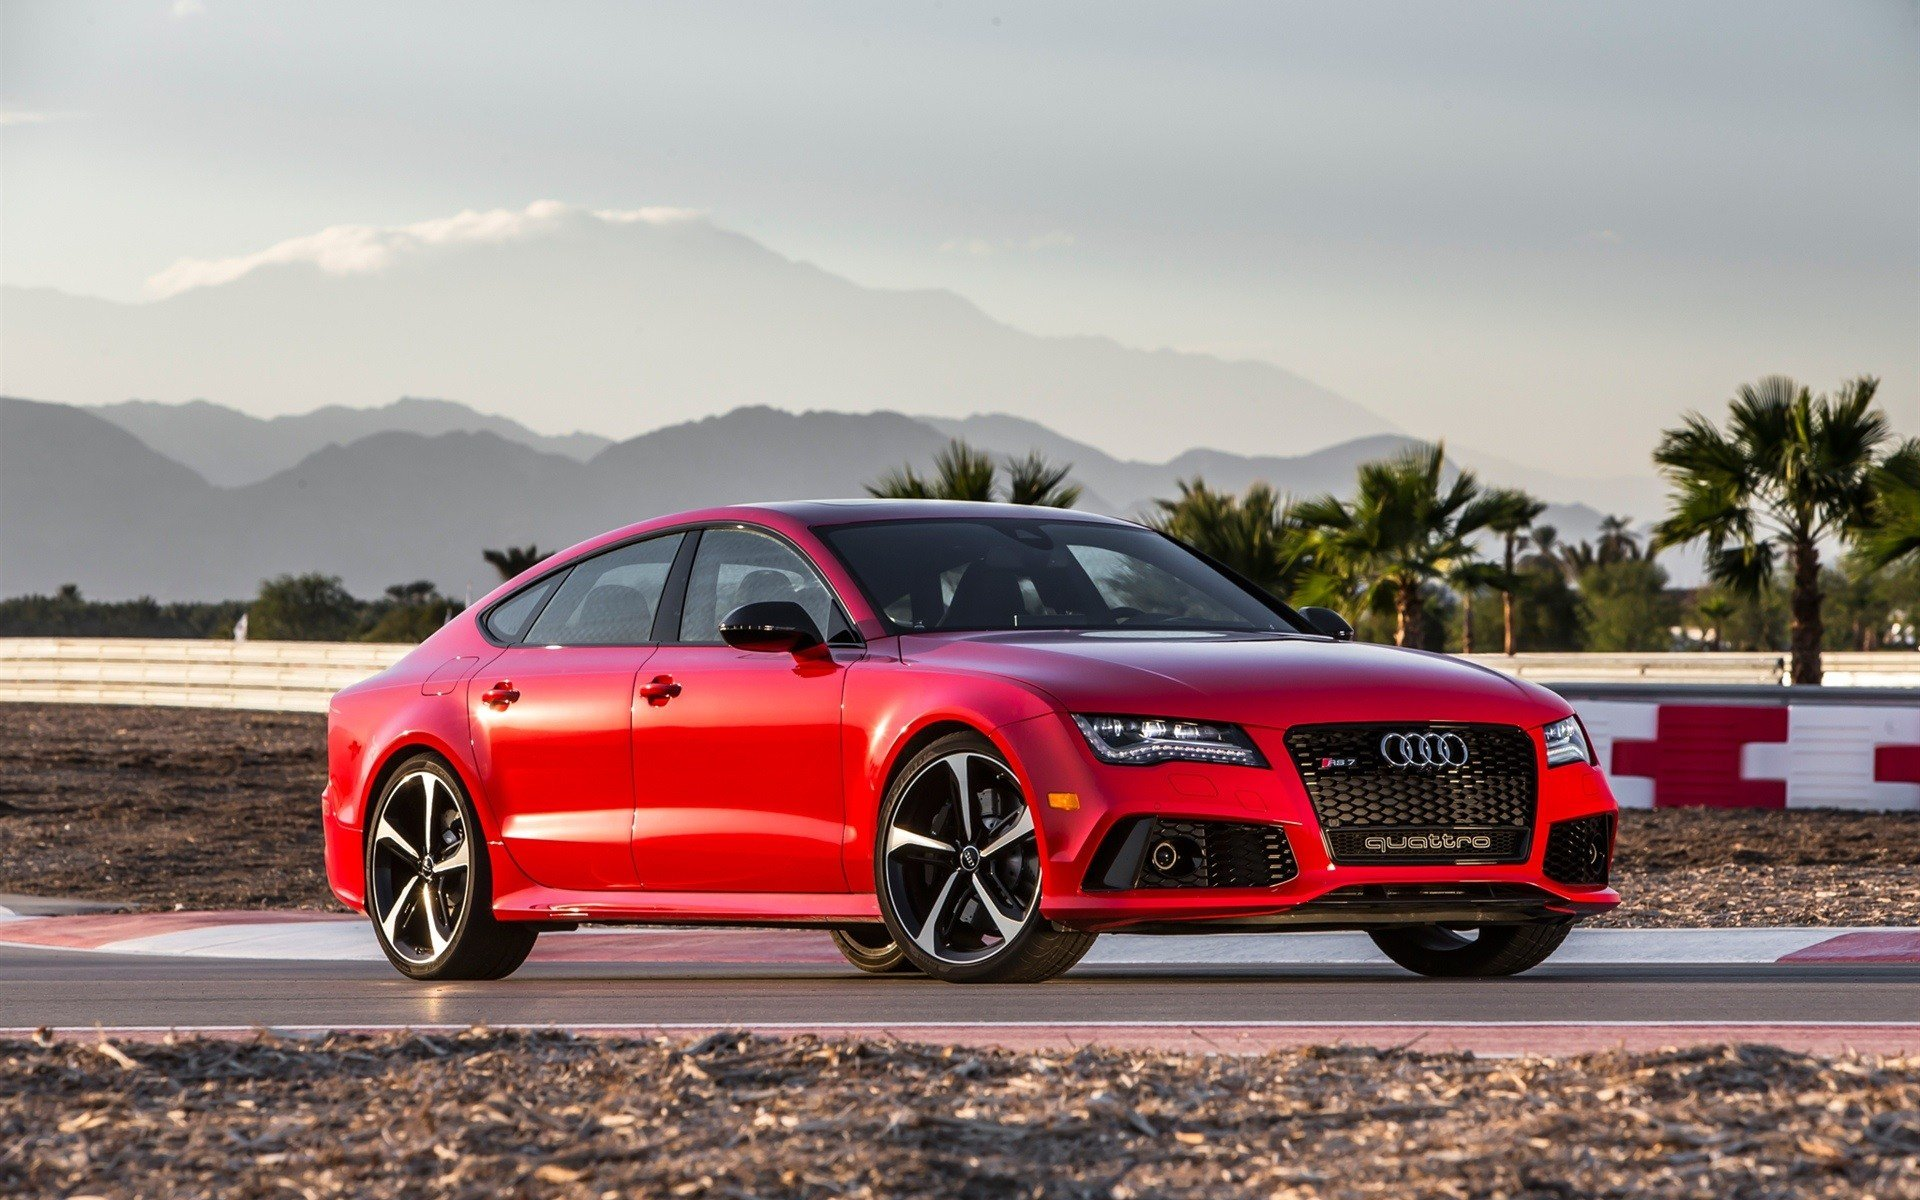 Latest Audi Rs7 Red V8 Car Wallpaper Cars Wallpaper Better Free Download